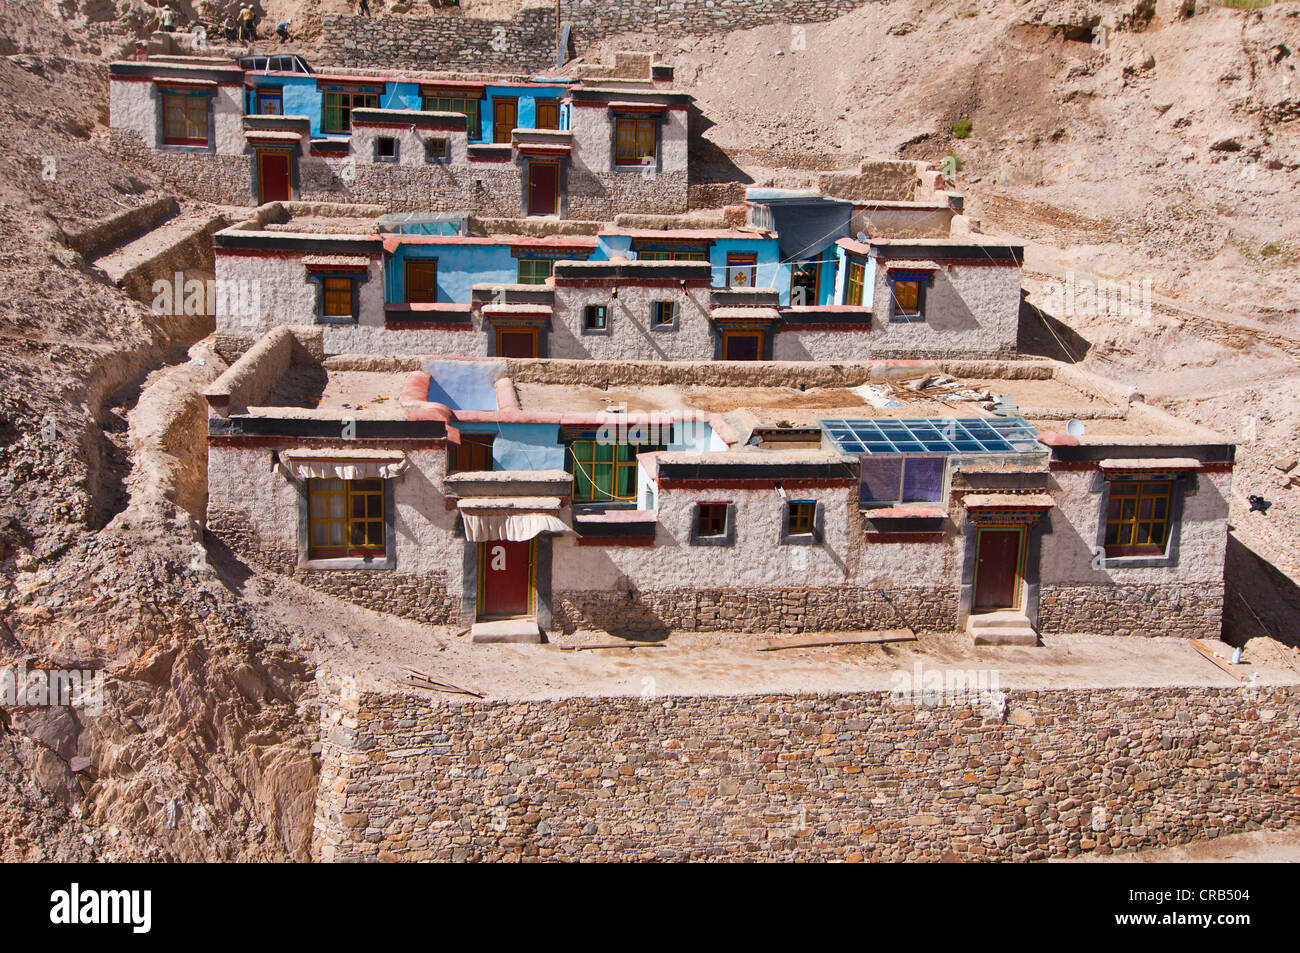 Tibetan houses in Gyantse, Tibet, Asia Stock Photo